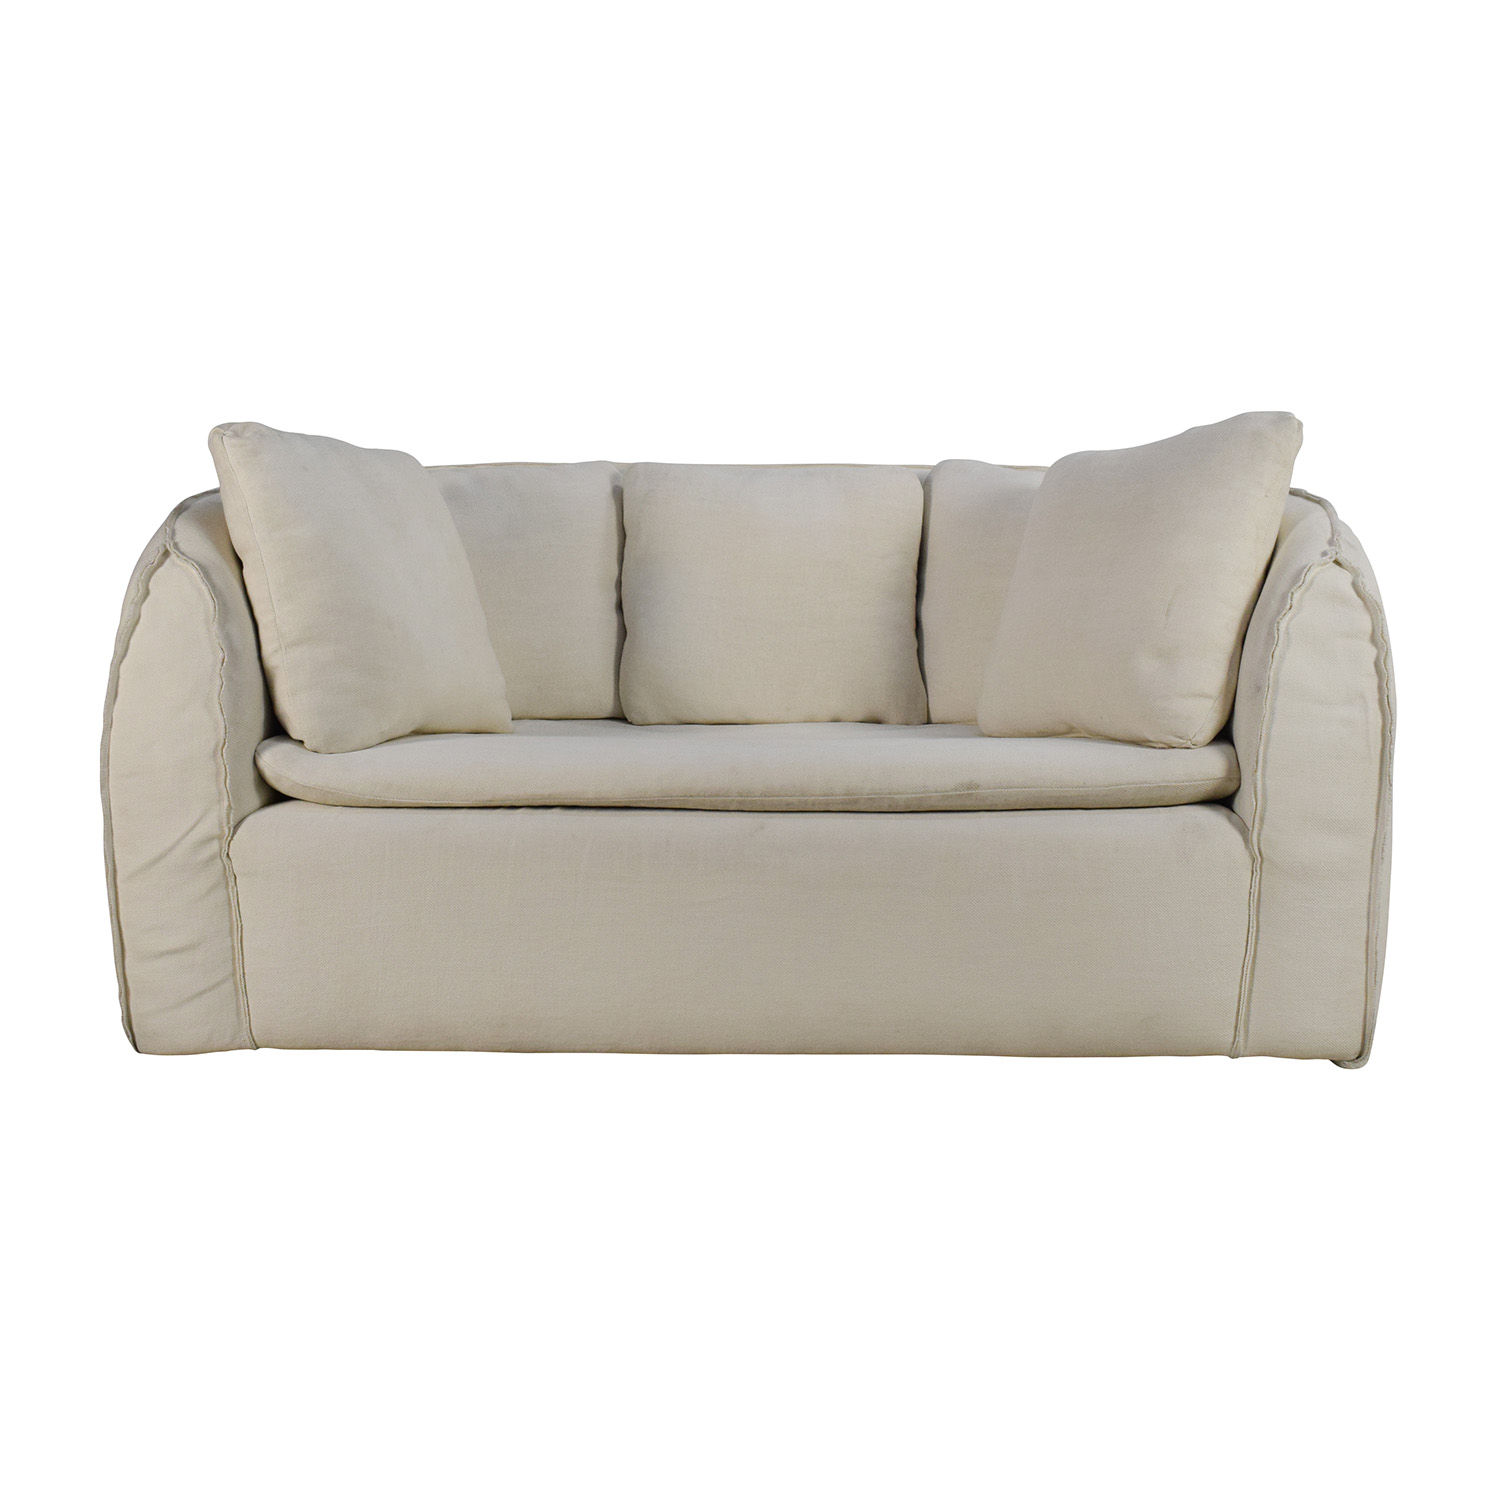 90 Off Environment Furniture Pacifica White Linen Couch Sofas